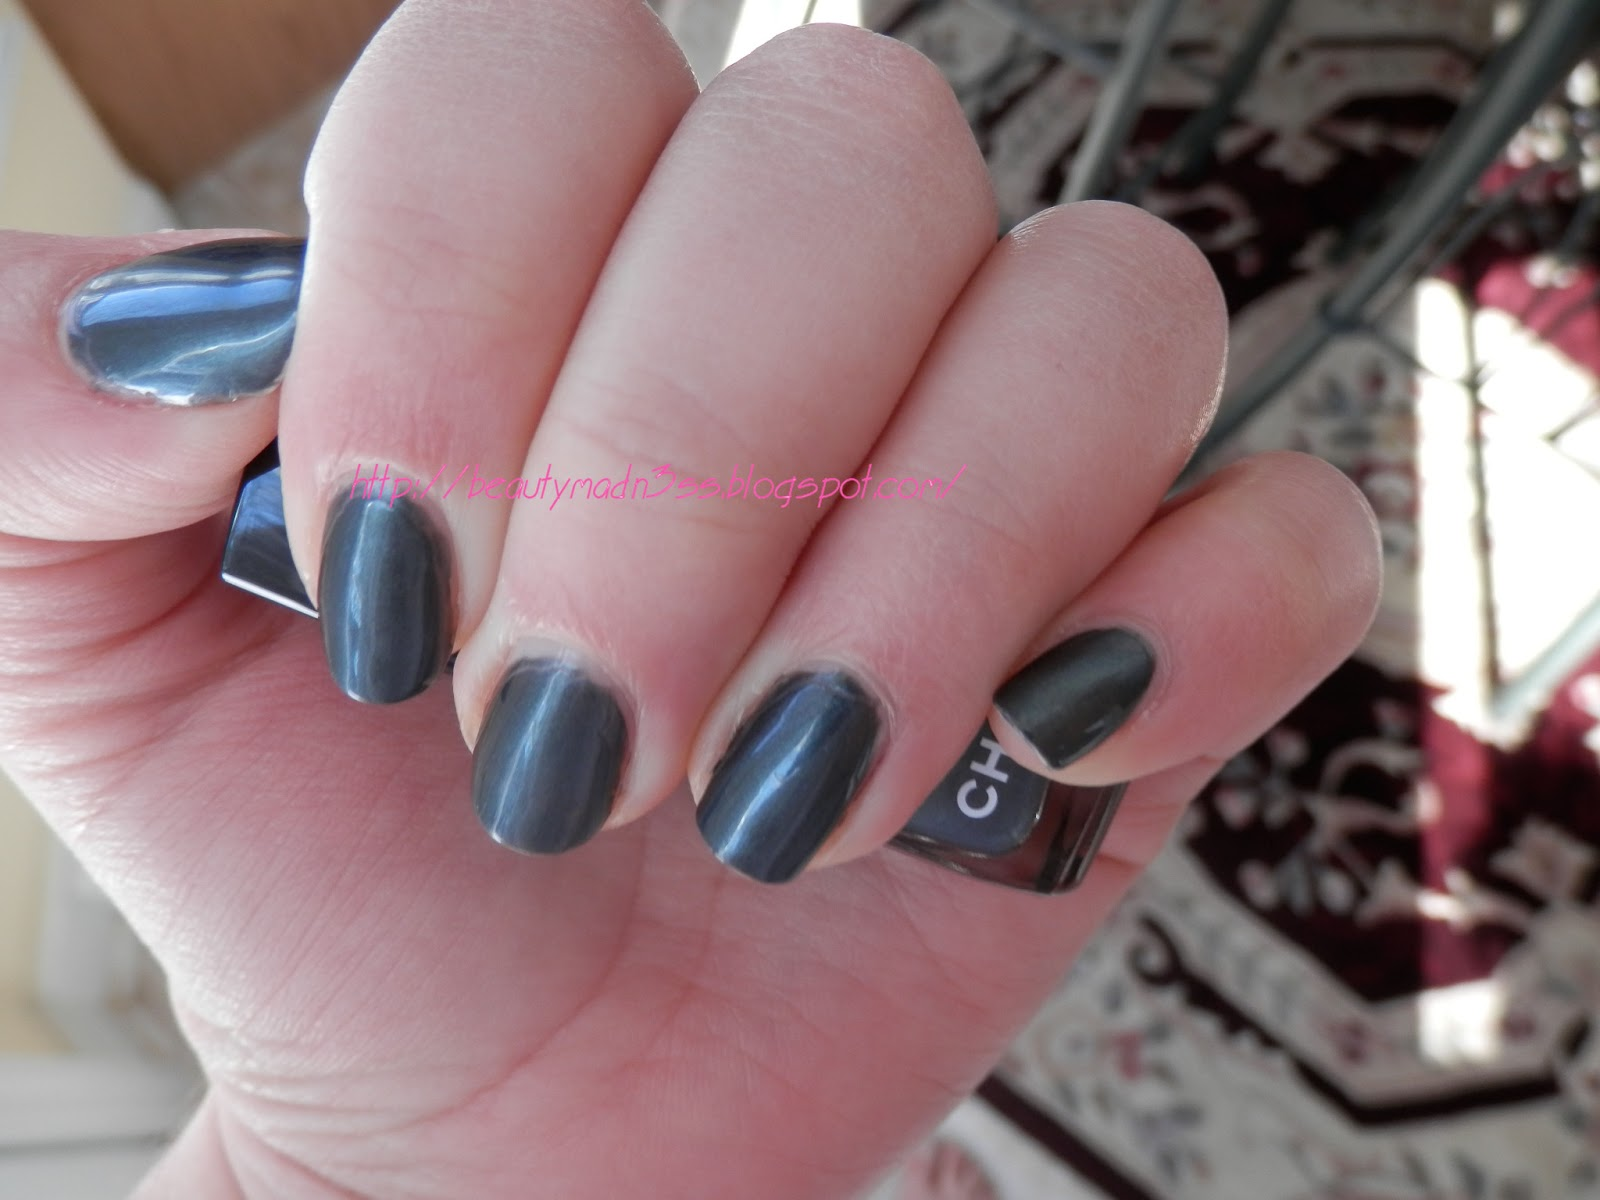 Chanel Le Vernis 513 Black Pearl swatch